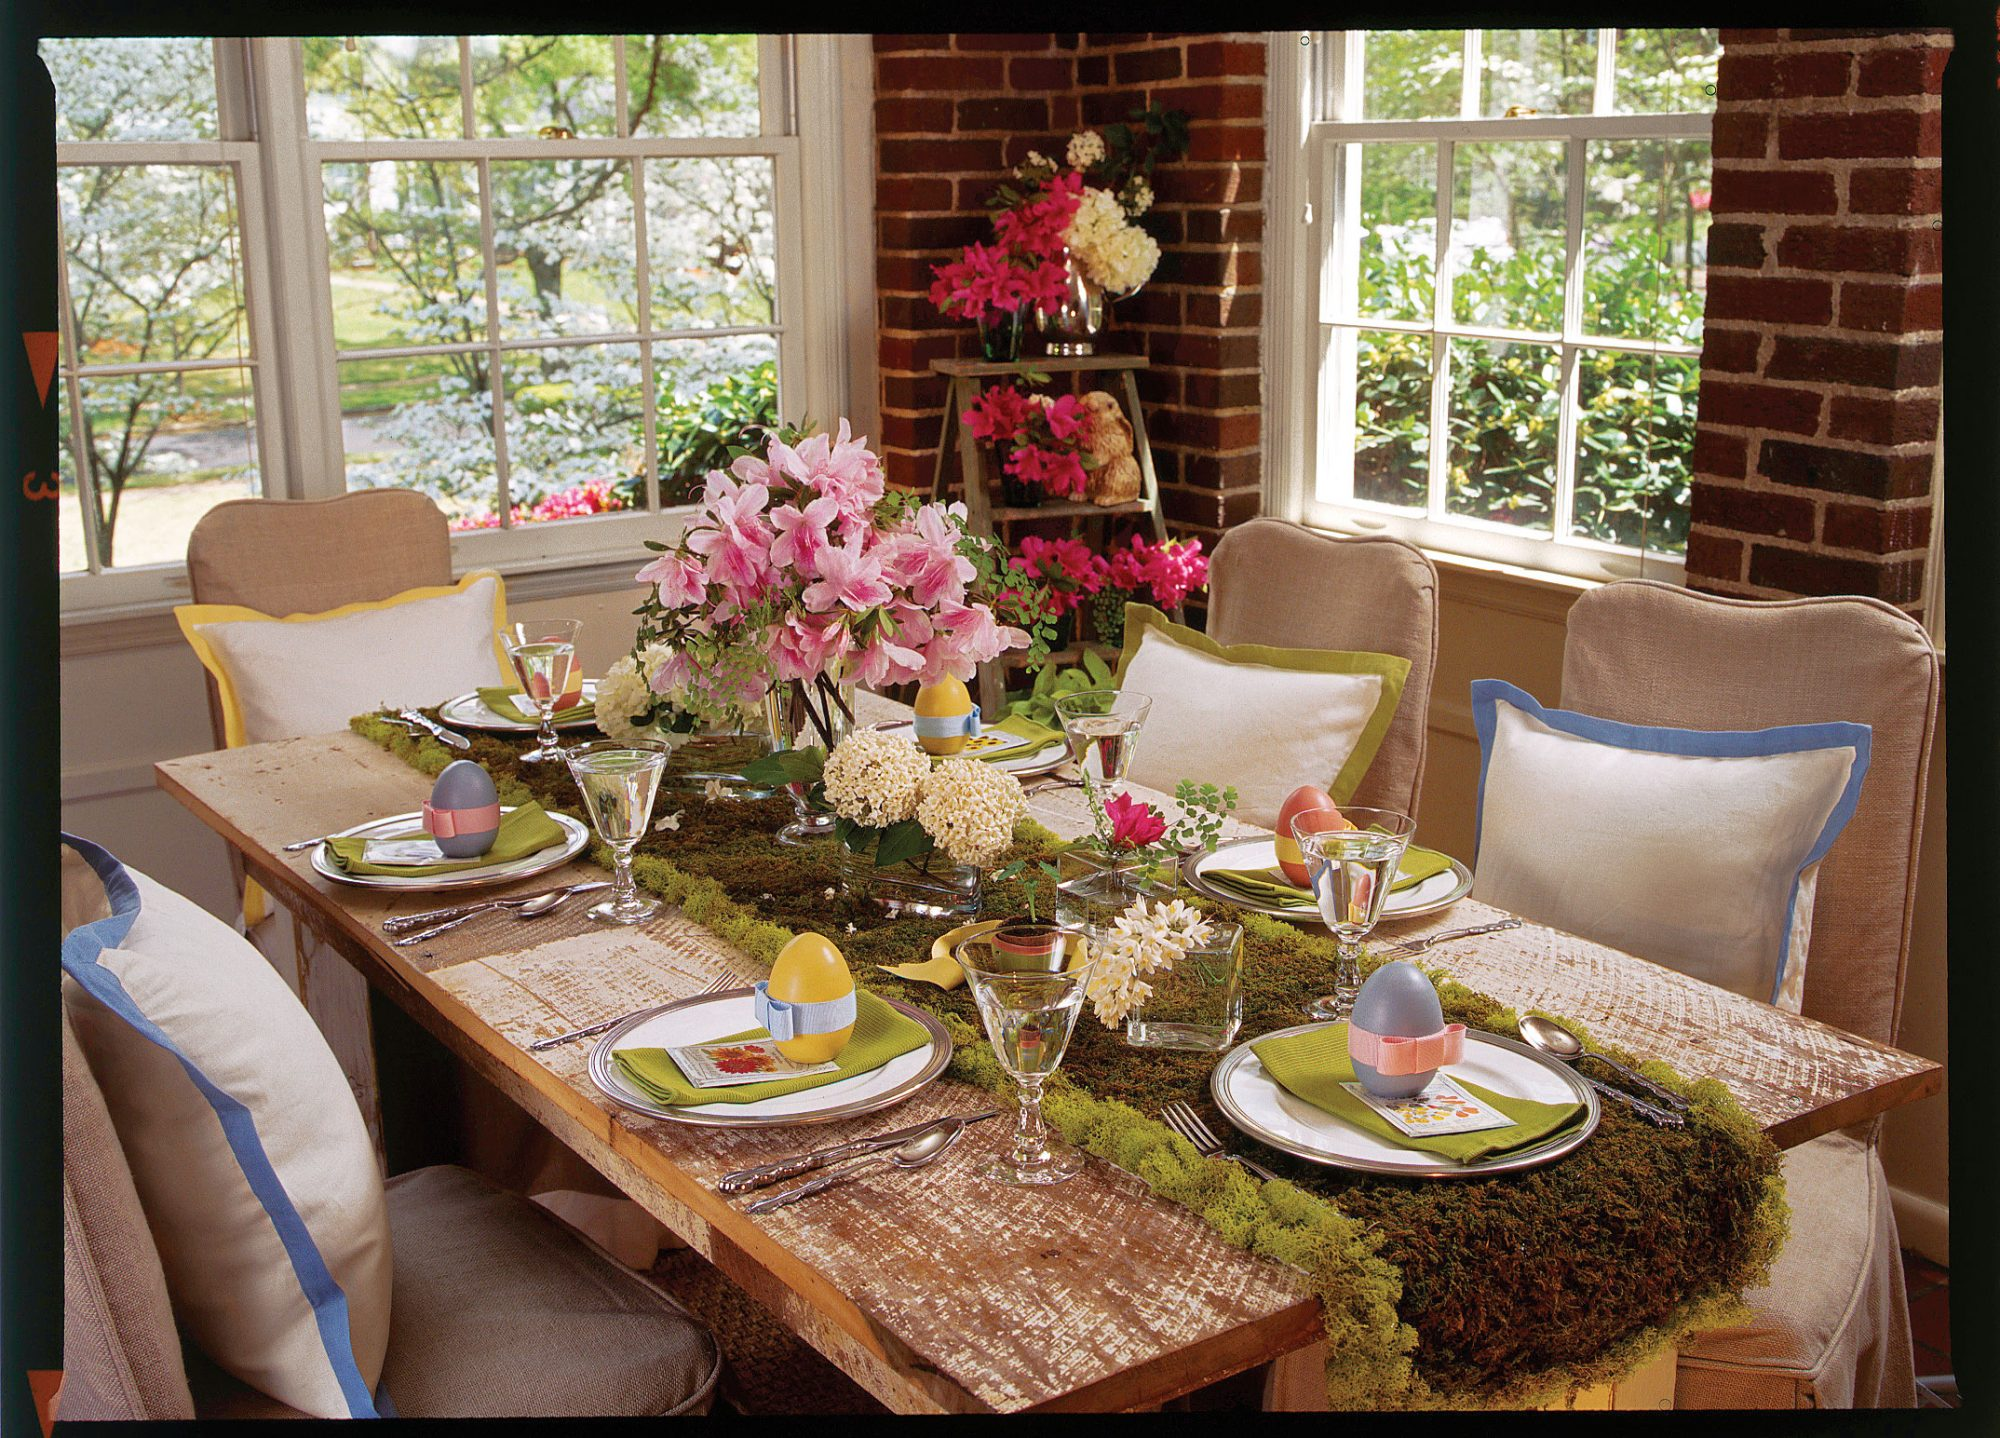 Southern Decor for Spring - Southern Living